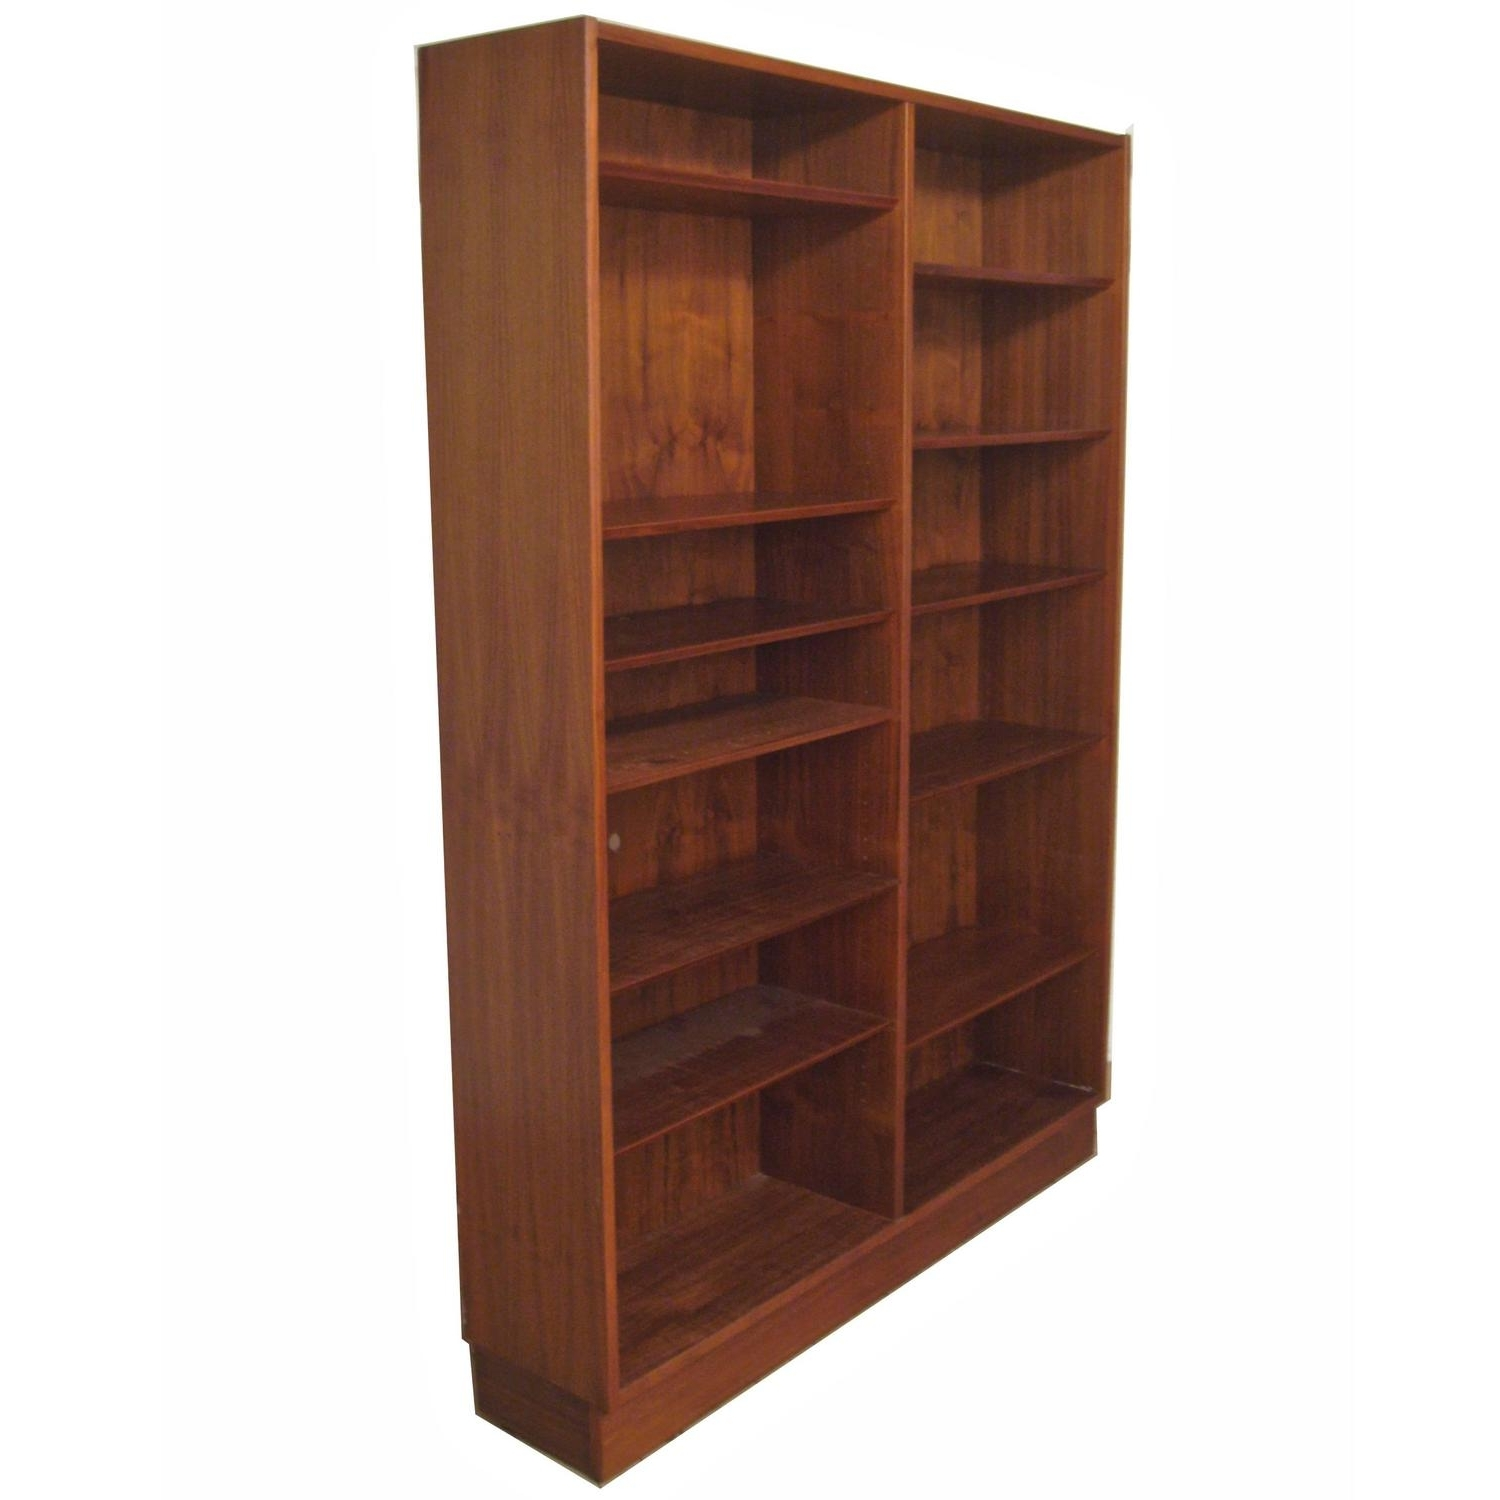 Poul Hundevad Danish Modern Teak Bookcase At 1stdibs With Most Up To Date Teak Bookcases (View 10 of 15)